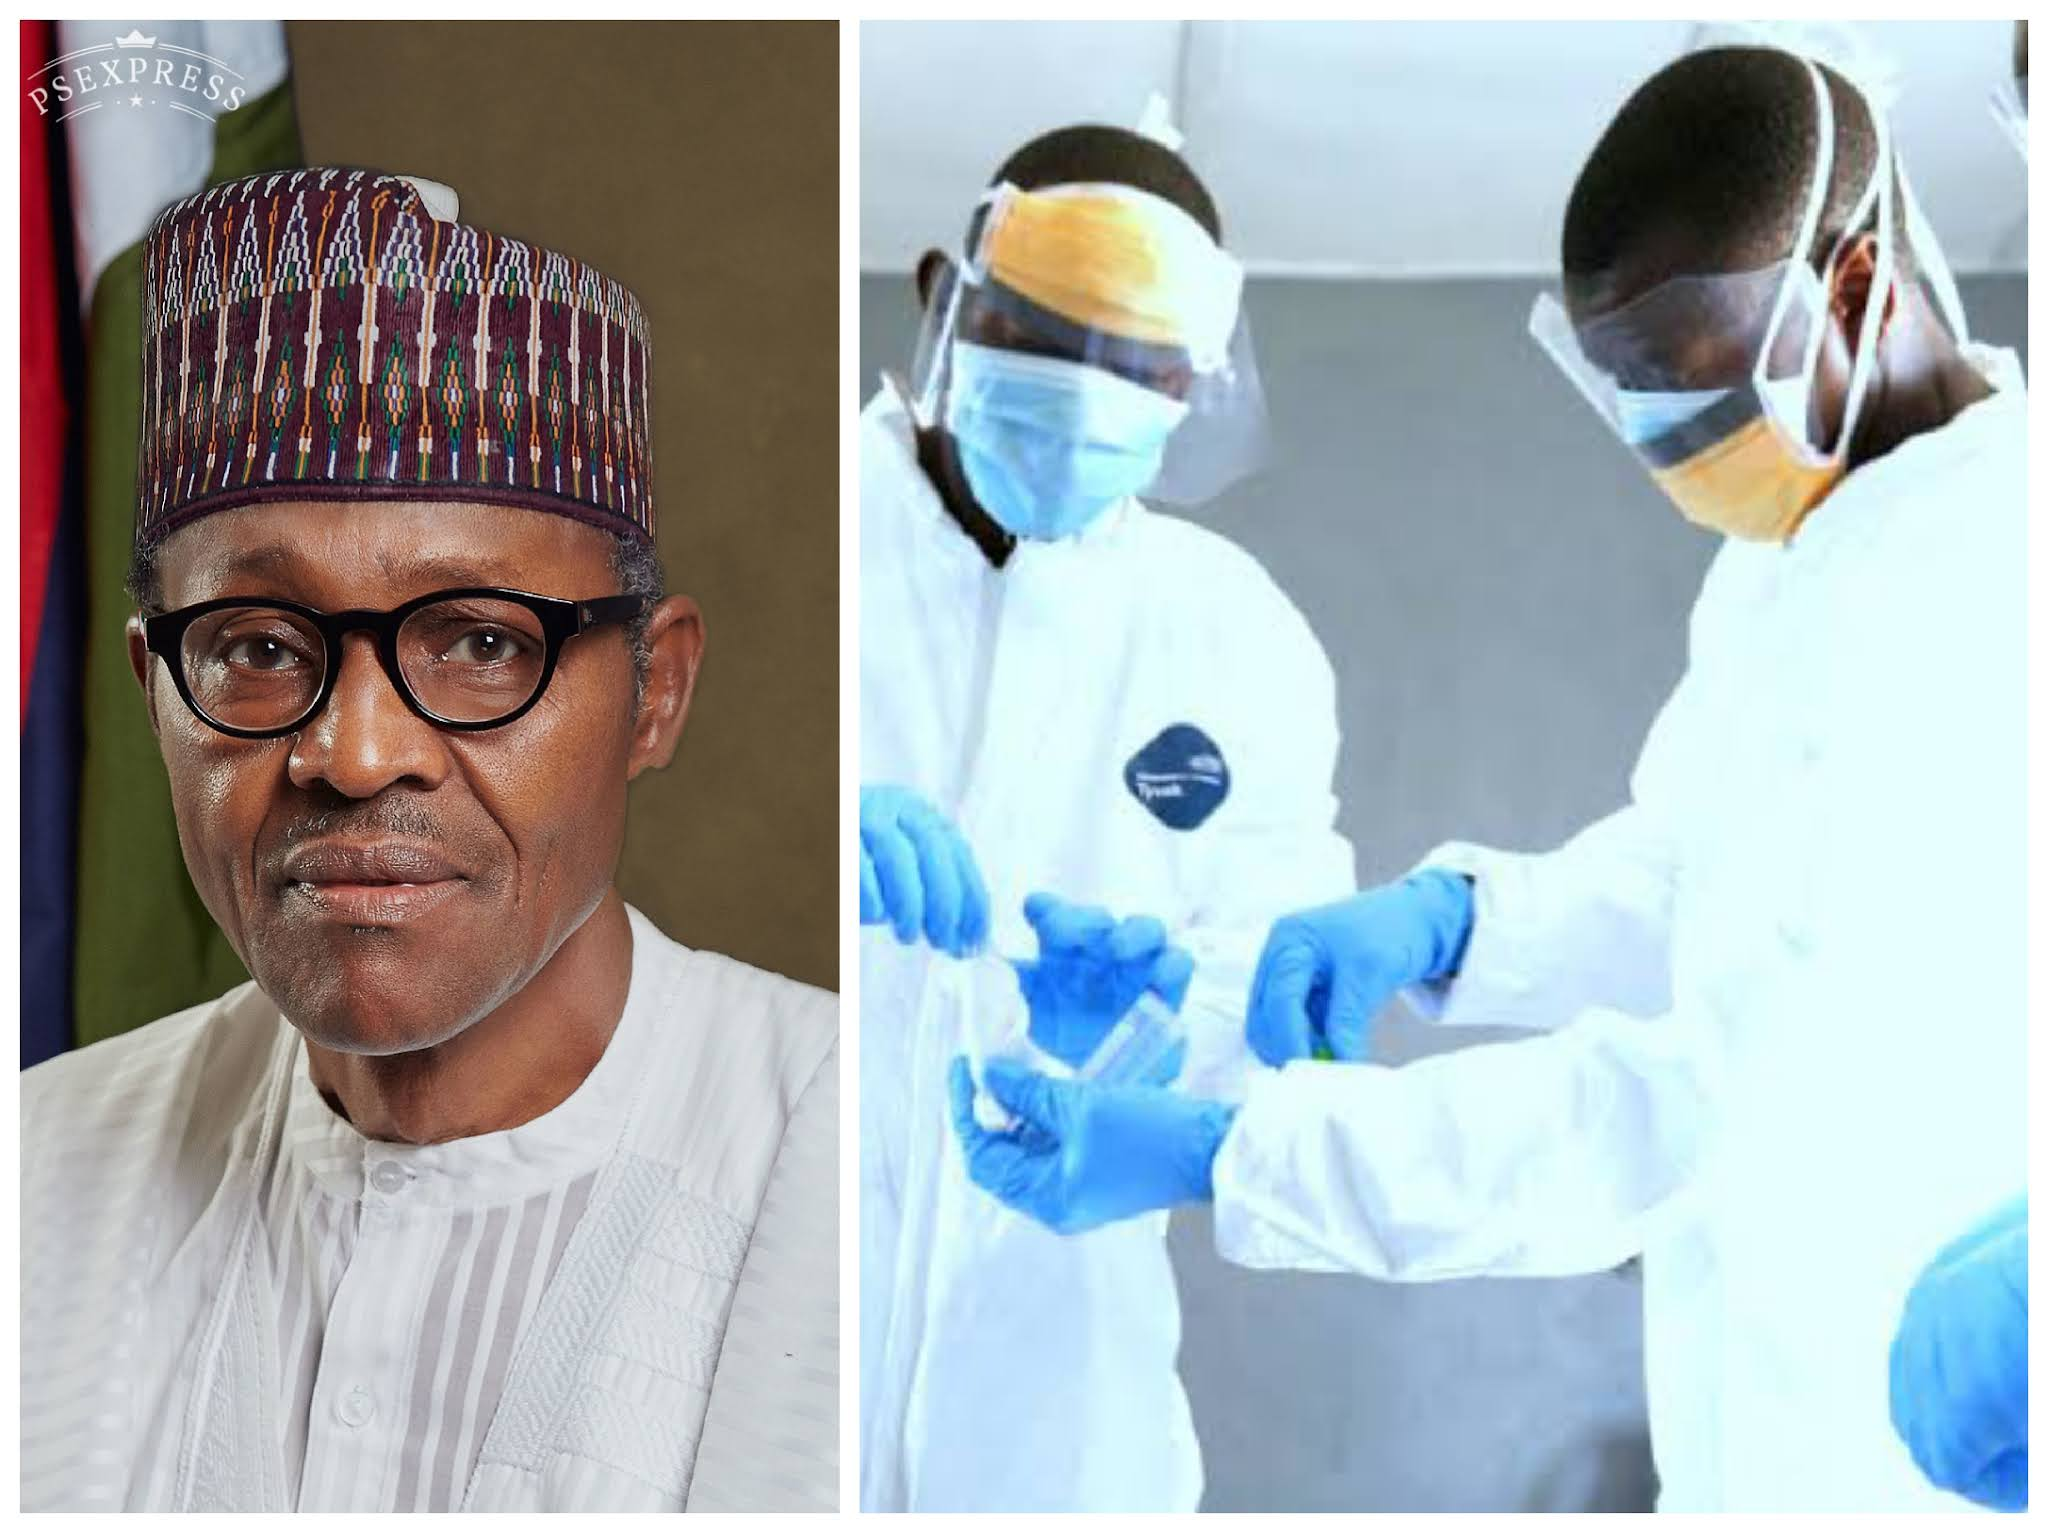 Over 4500 Nigerian Doctors Flee To UK To Practice Since Buhari Became President